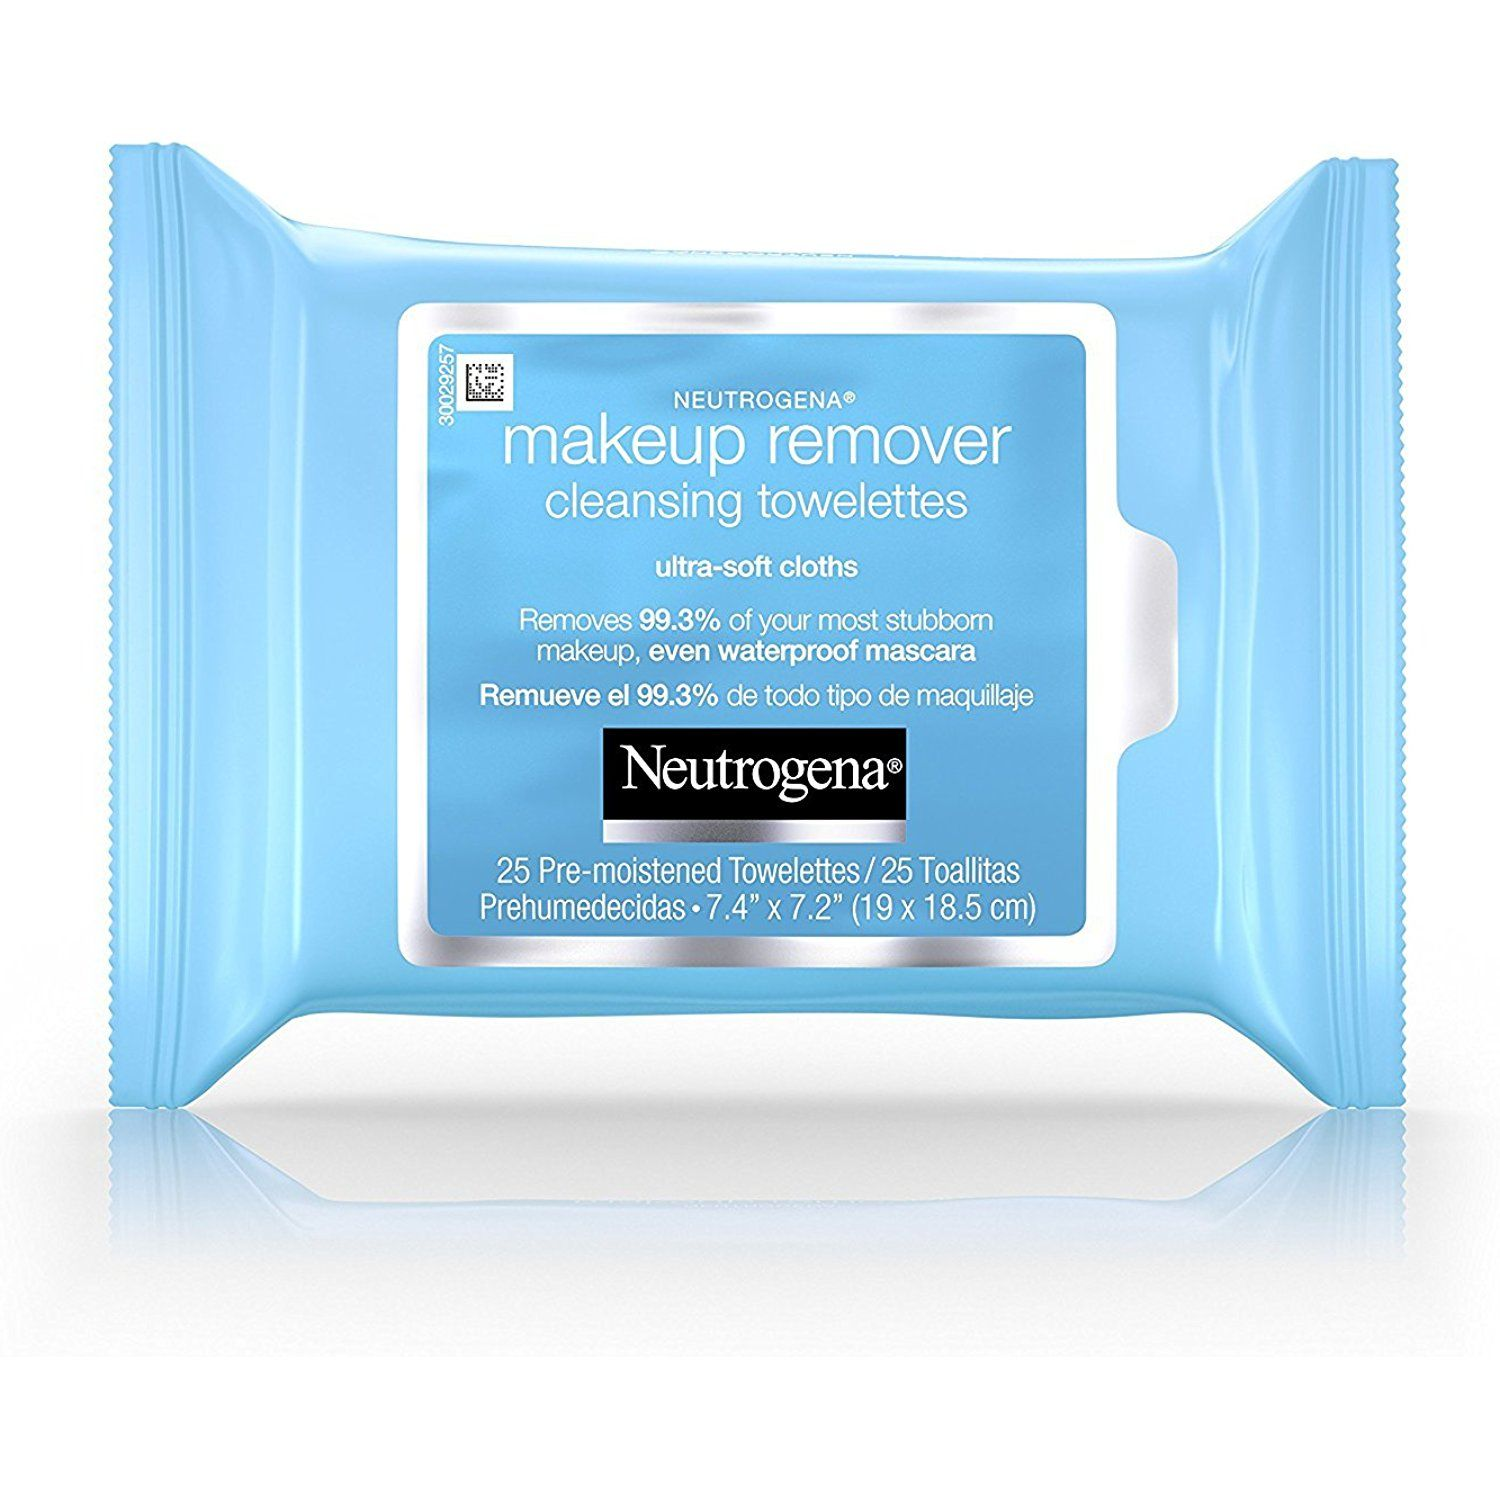 Neutrogena Cleansing Makeup Remover Facial Wipes